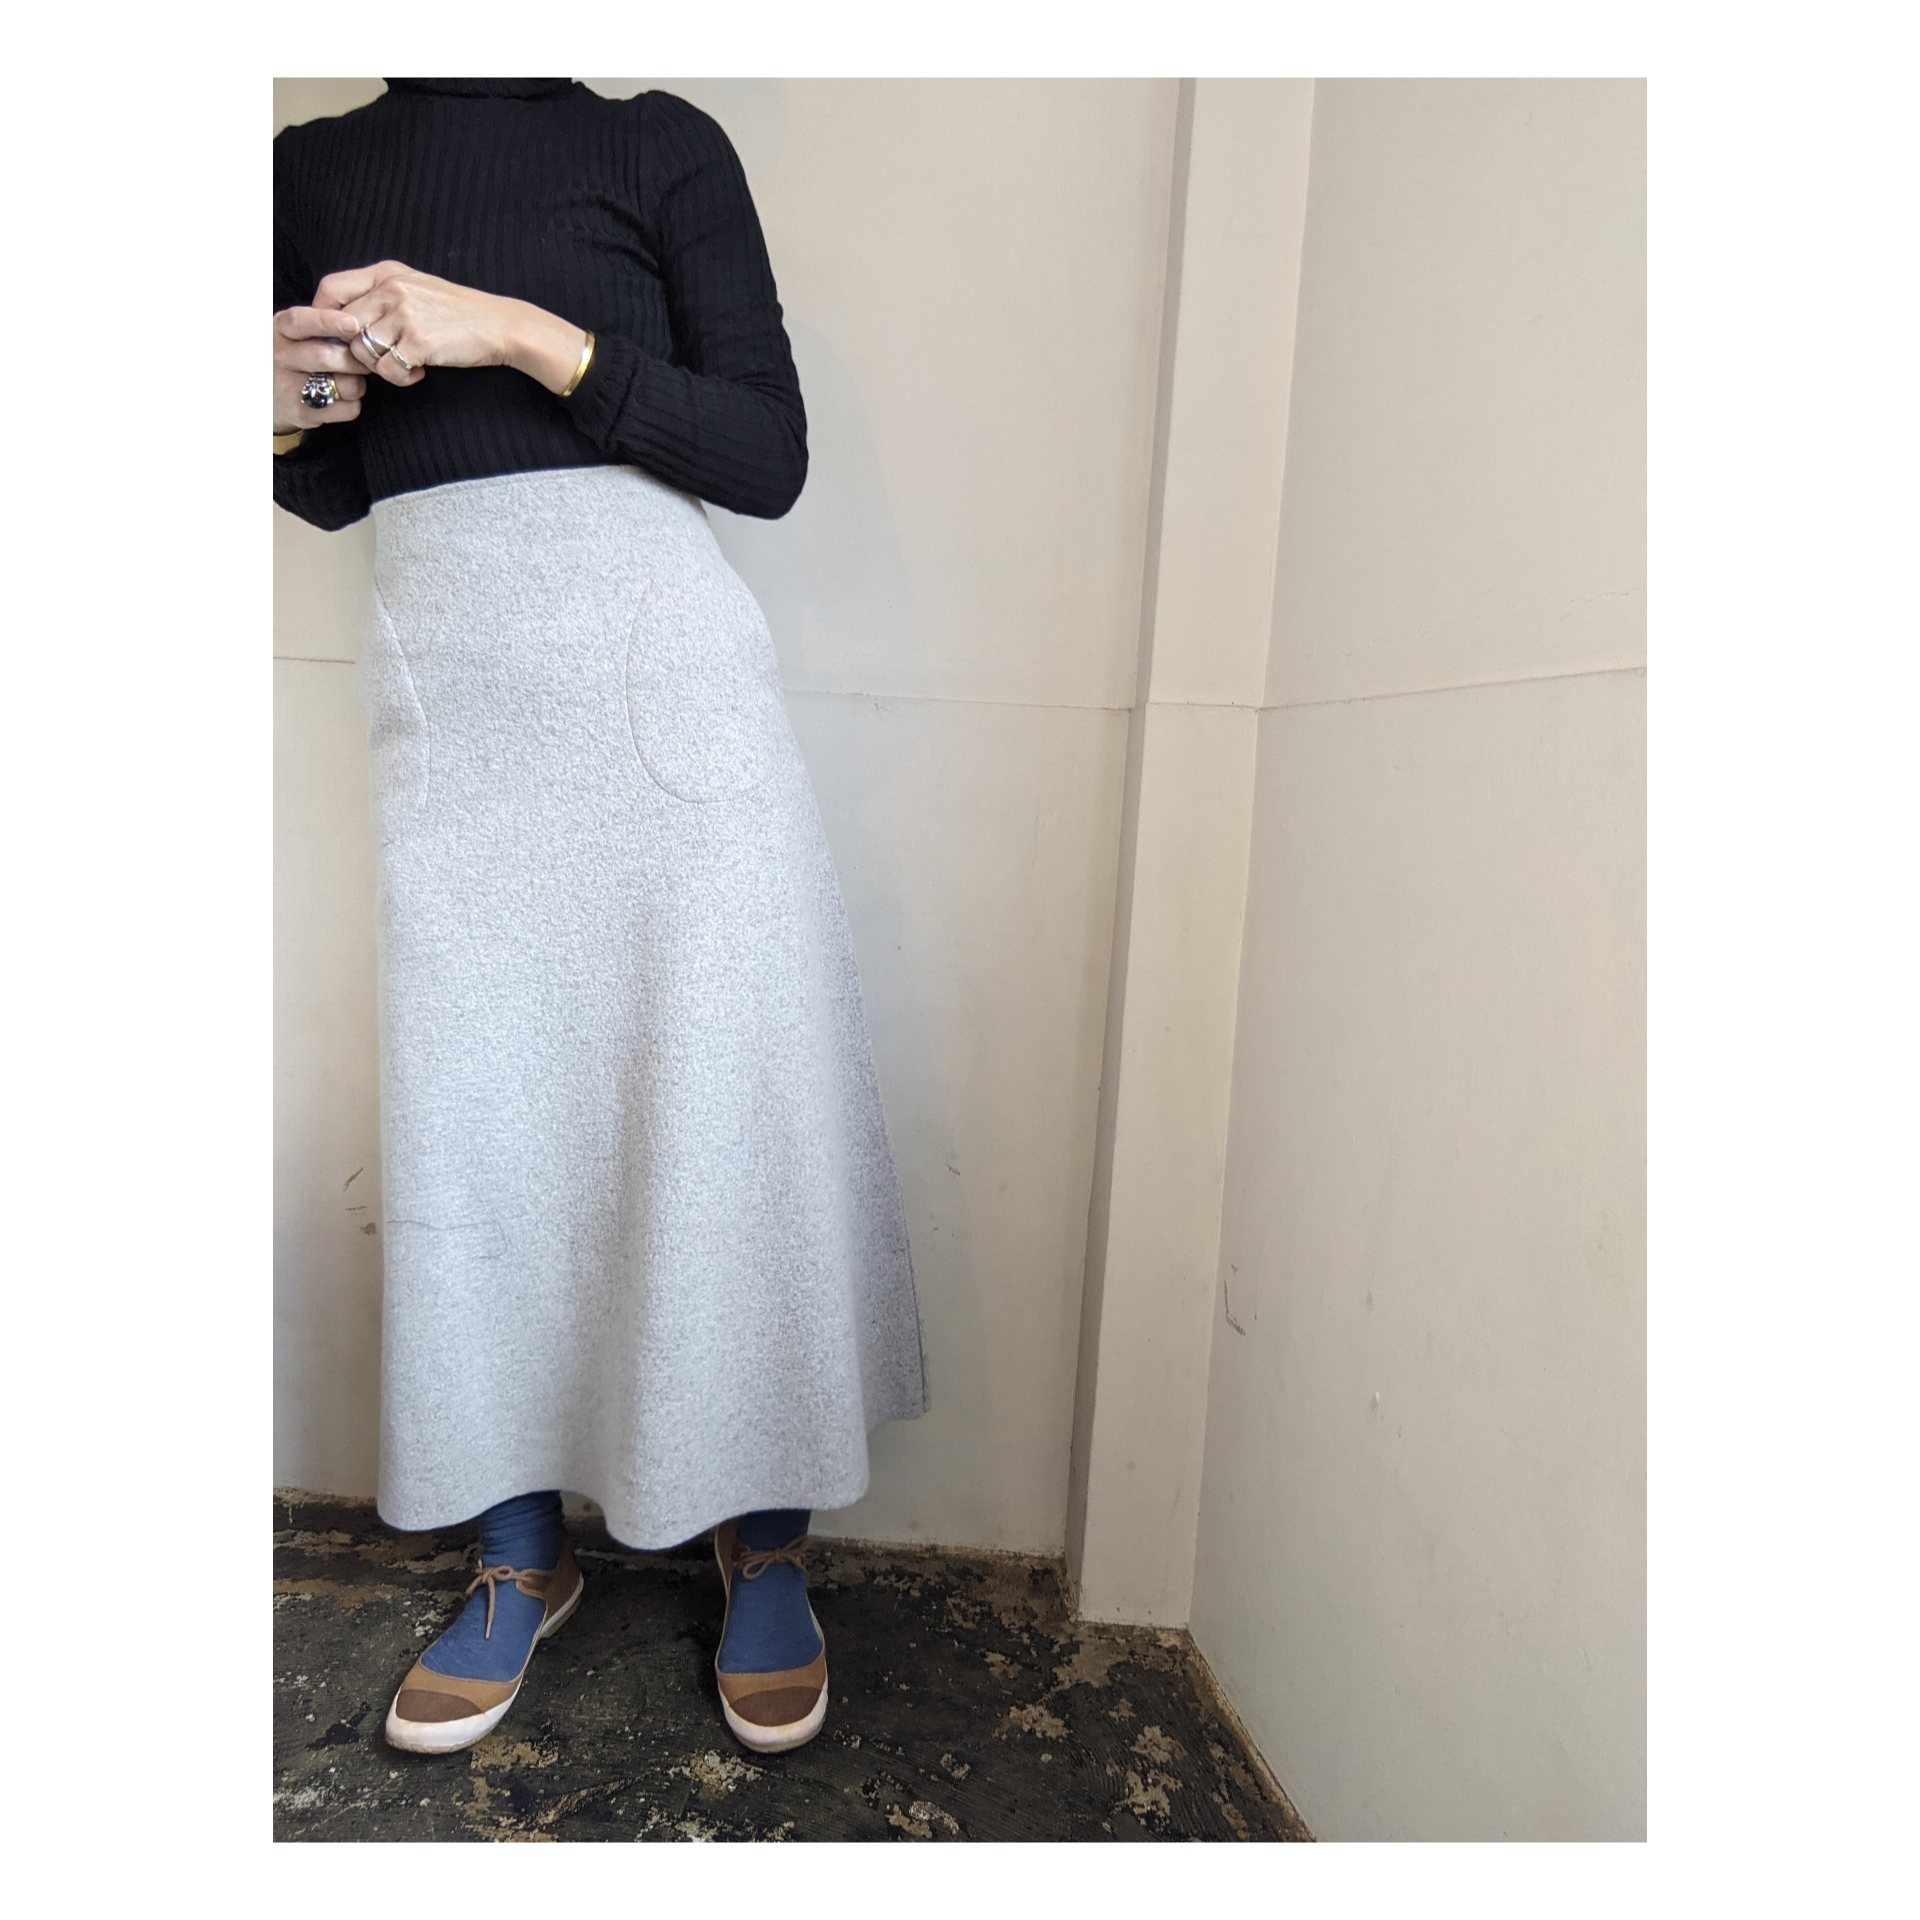 【 habille 】アビエ / wool ring yarn compressed jersey / wool skirt / フレアースカート / Grage グレージュ